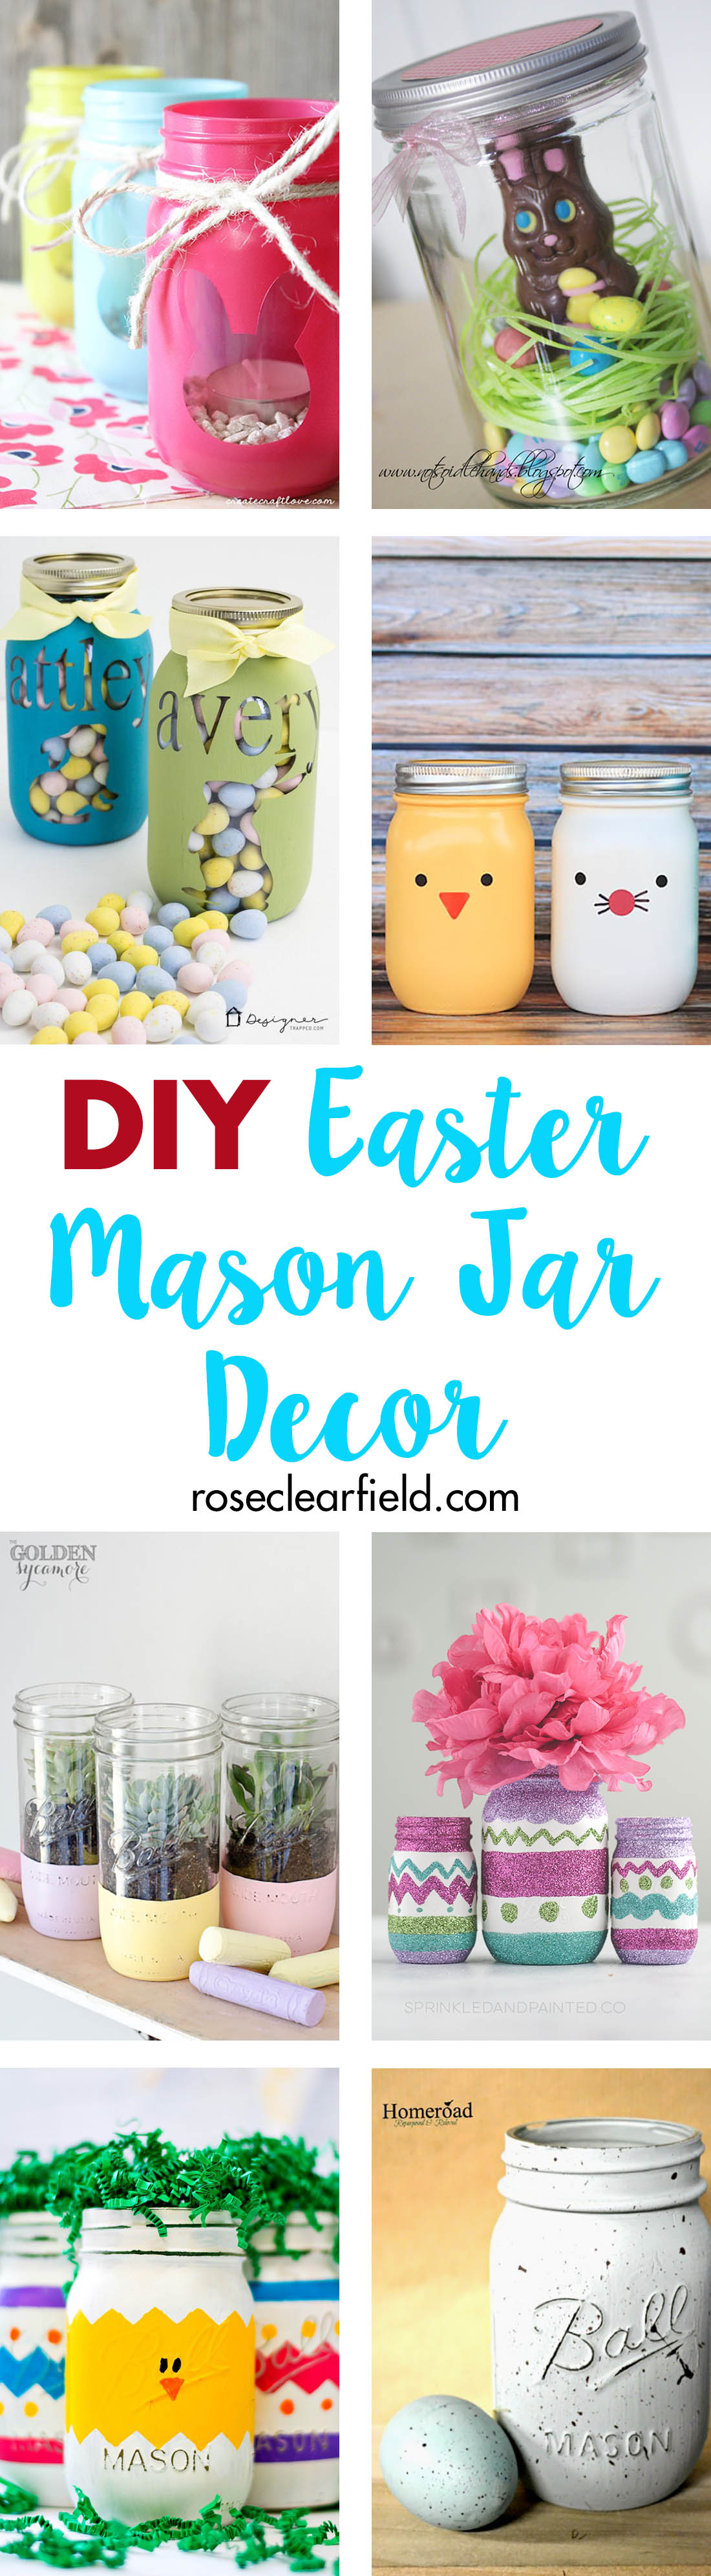 Create your own DIY Easter mason jar decor in minutes! This simple, whimsical holiday decor comes together in minutes. #Easter #DIY #masonjars   https://www.roseclearfield.com